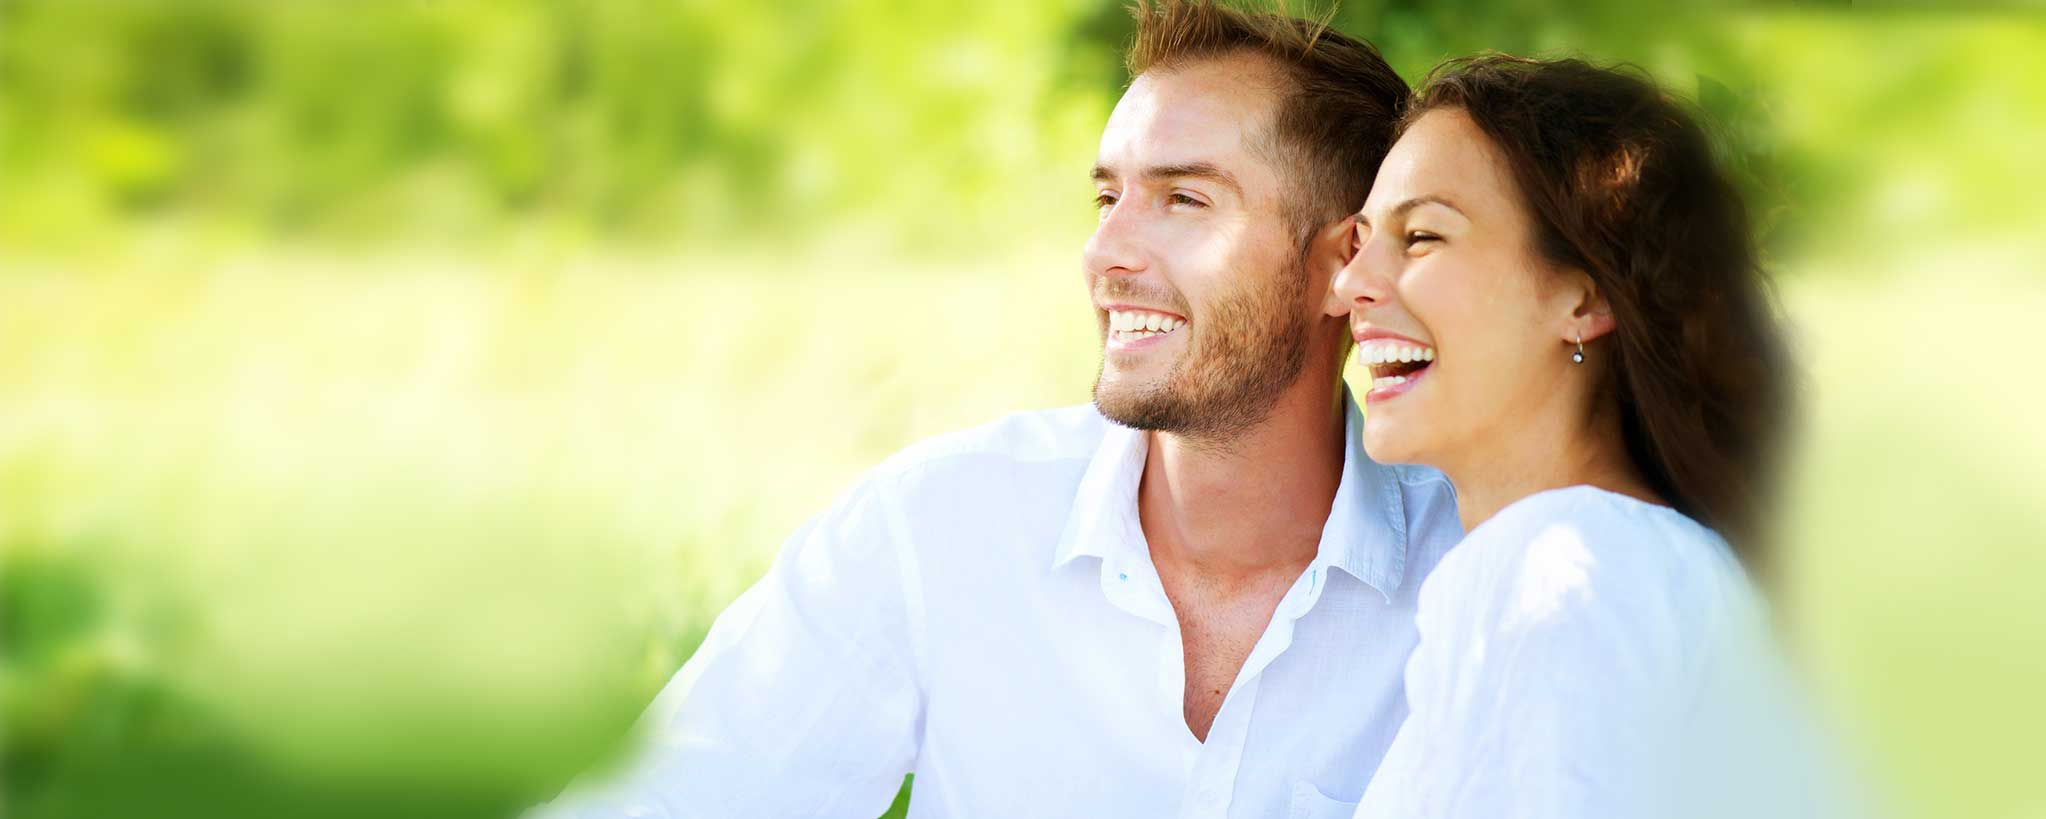 <span>Get Teeth Whitening</span> From a Trusted Team